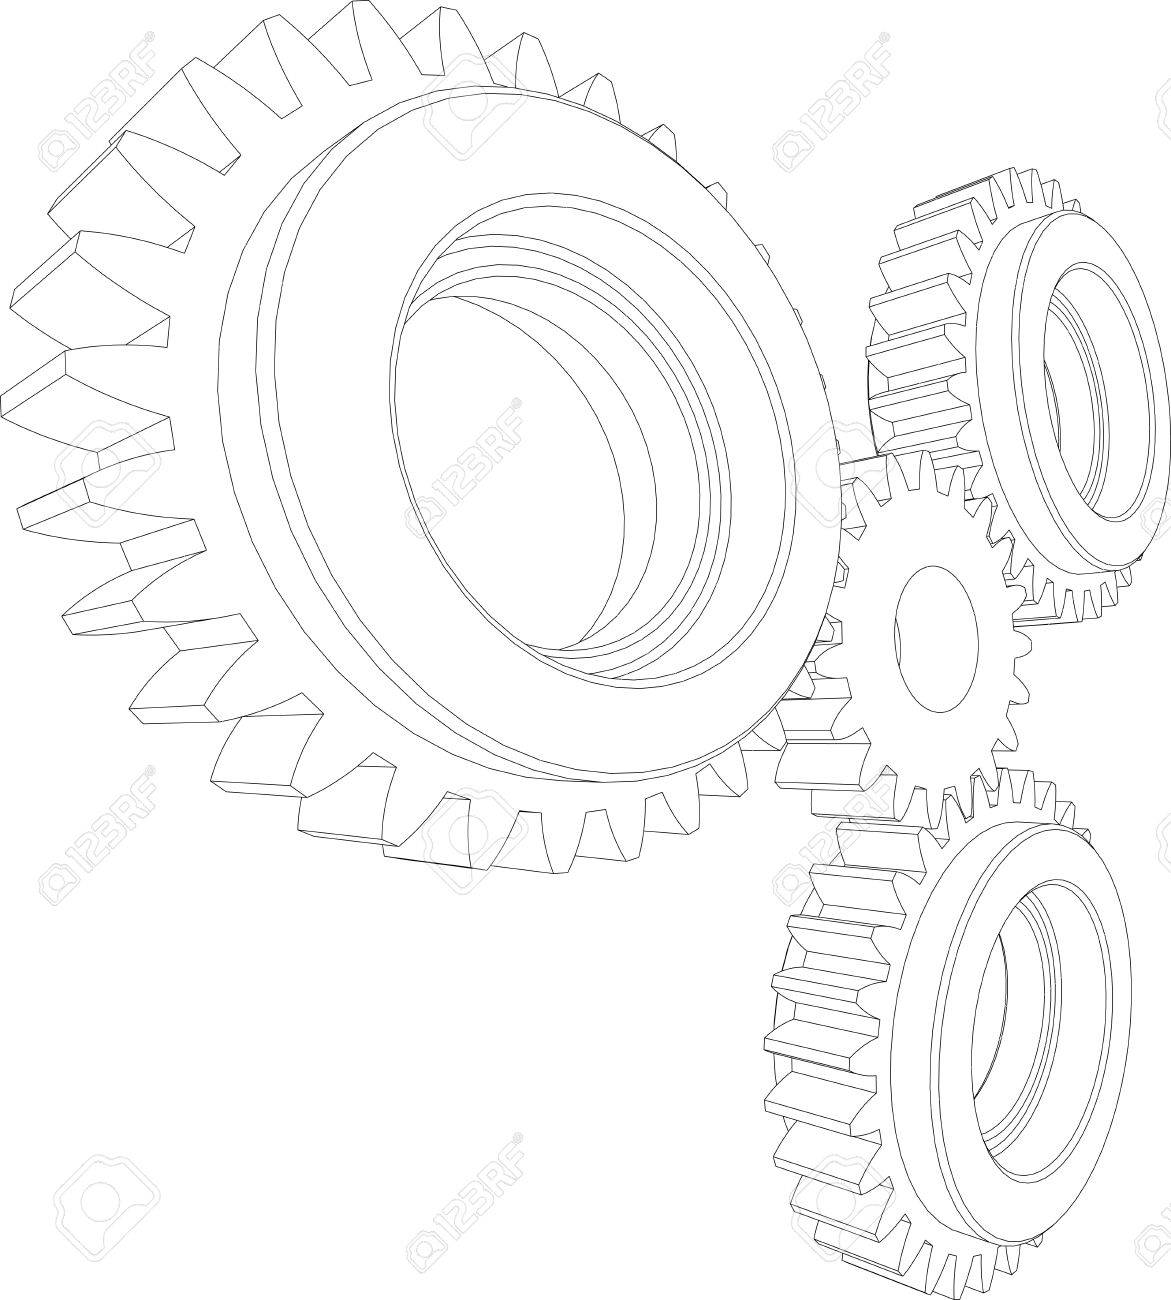 1171x1300 Sketch Of Wire Frame Gears. Perspective View. Teamwork Concept